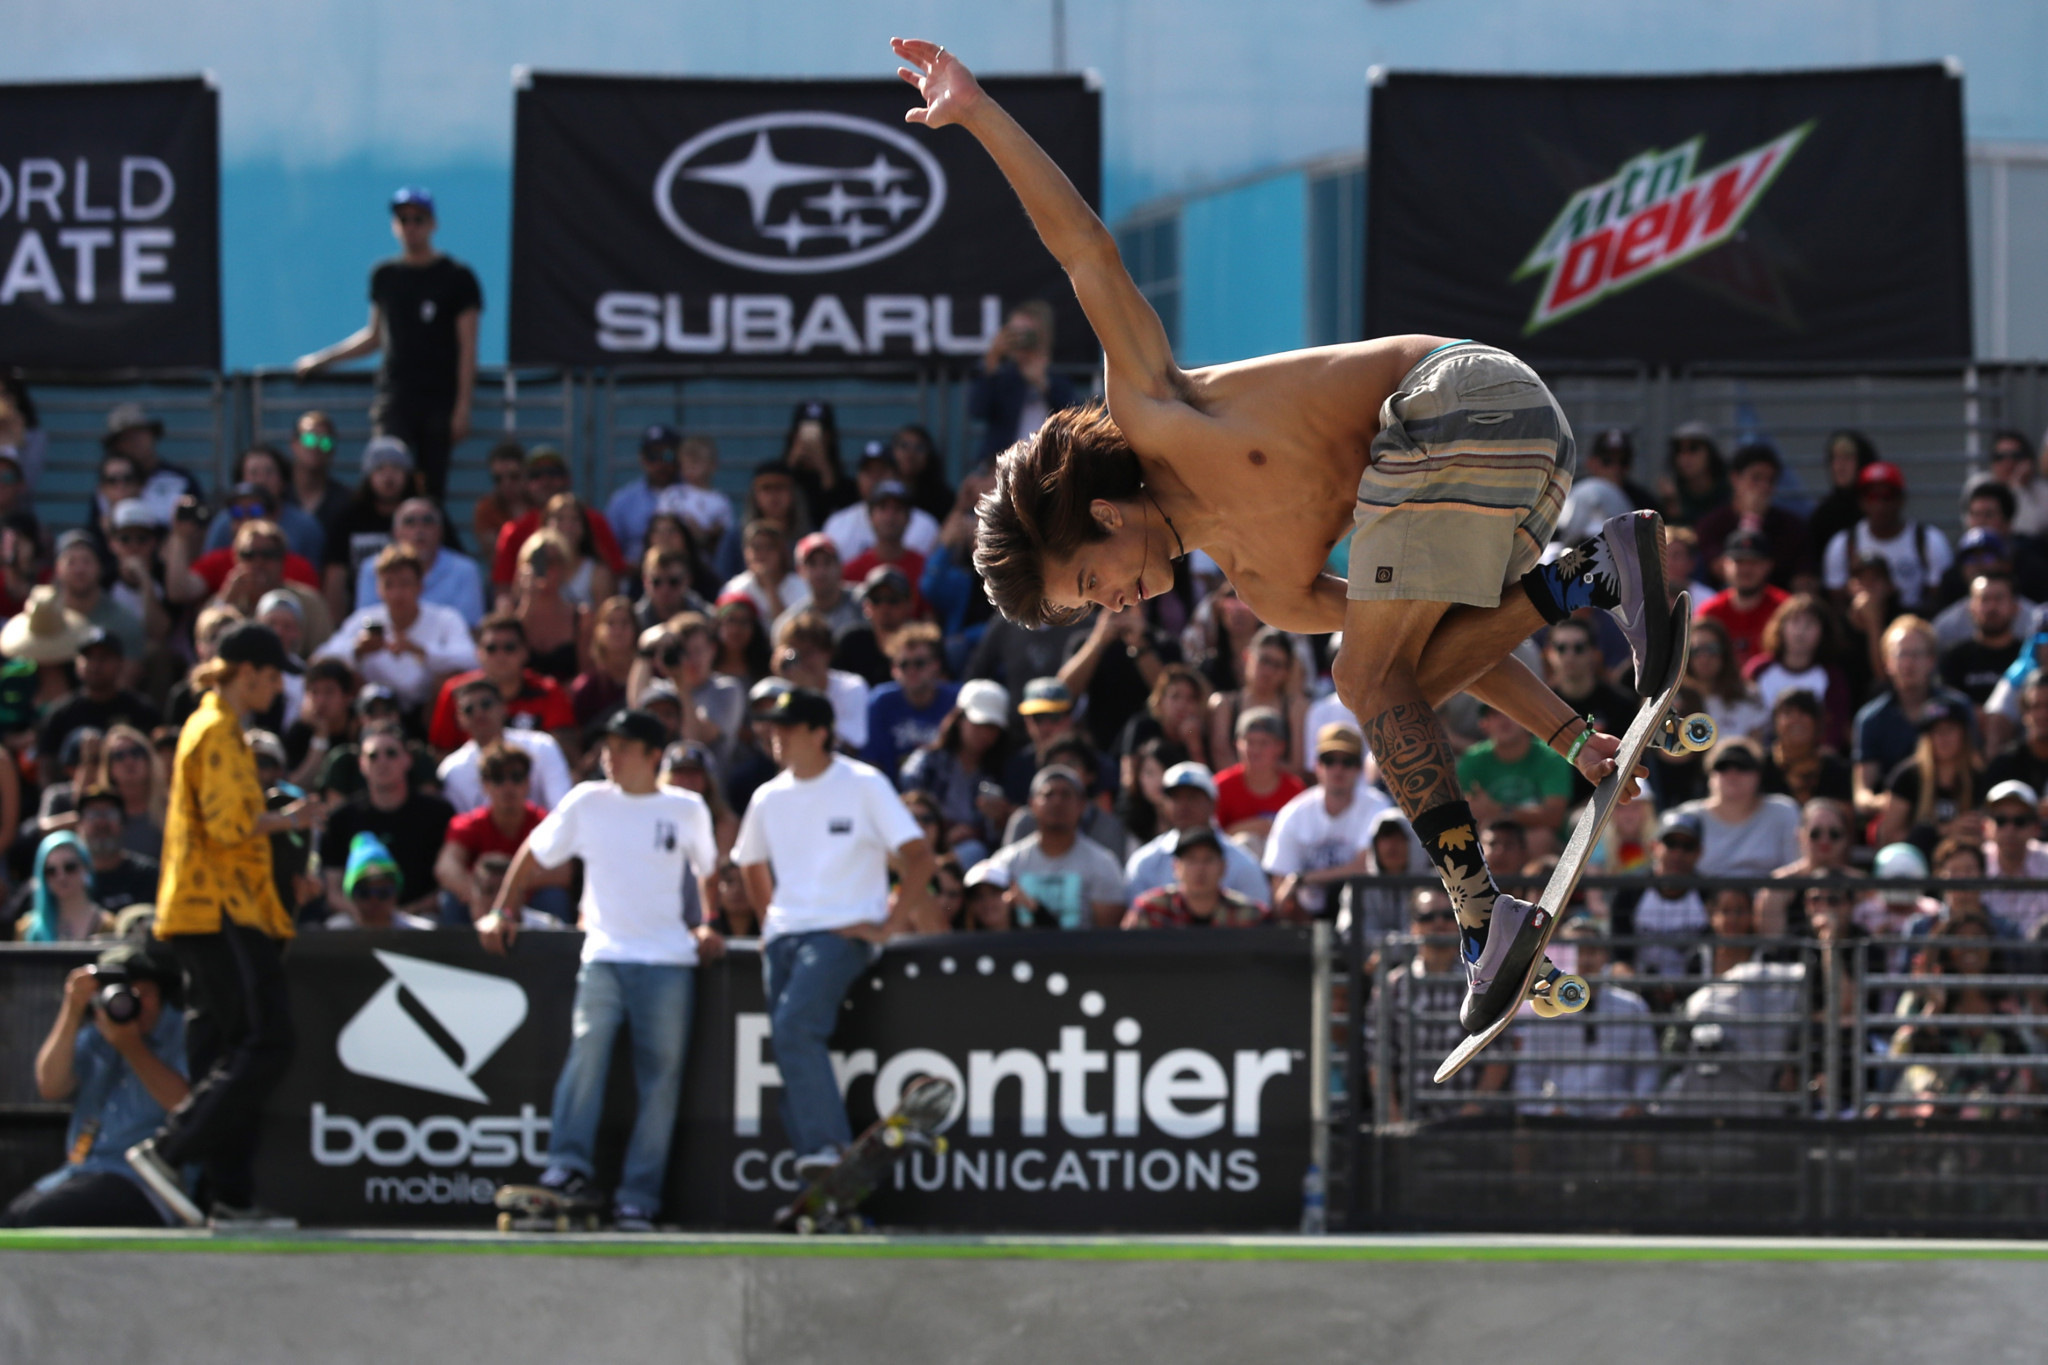 The Long Beach event is an Olympic qualifier for skateboarding's debut at Tokyo 2020 ©Getty Images